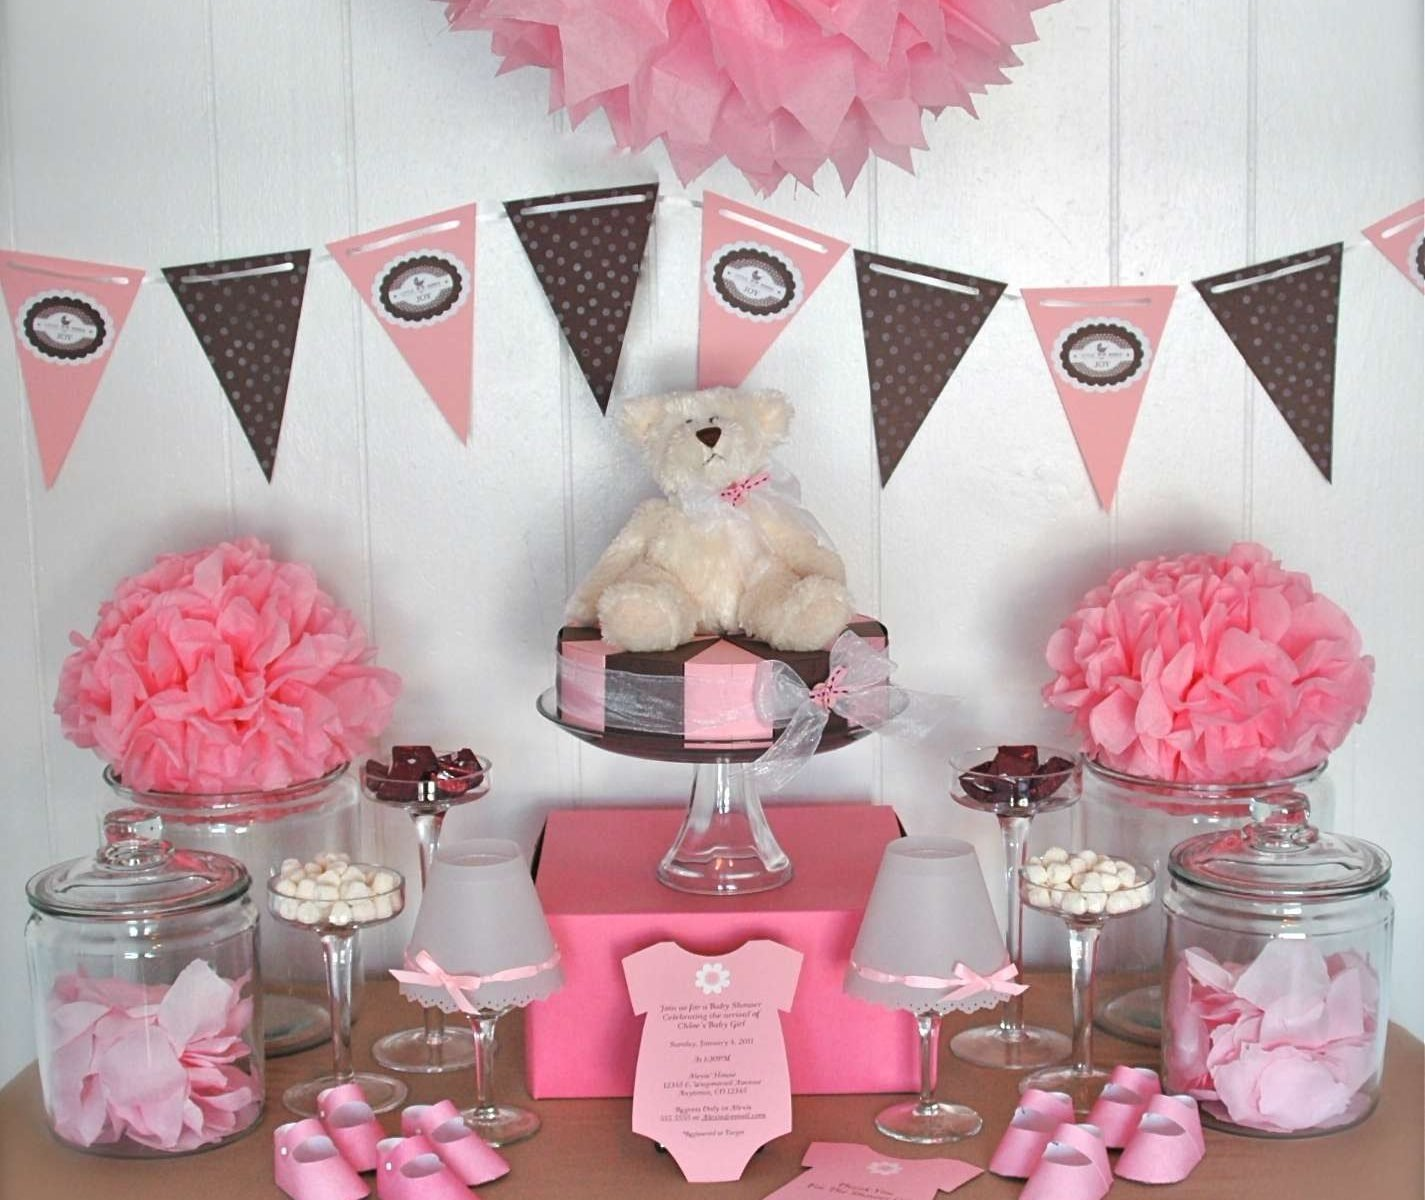 10 Gorgeous Girl Baby Shower Theme Ideas baby shower theme for girl favors ideas twin supplies stirring 2020